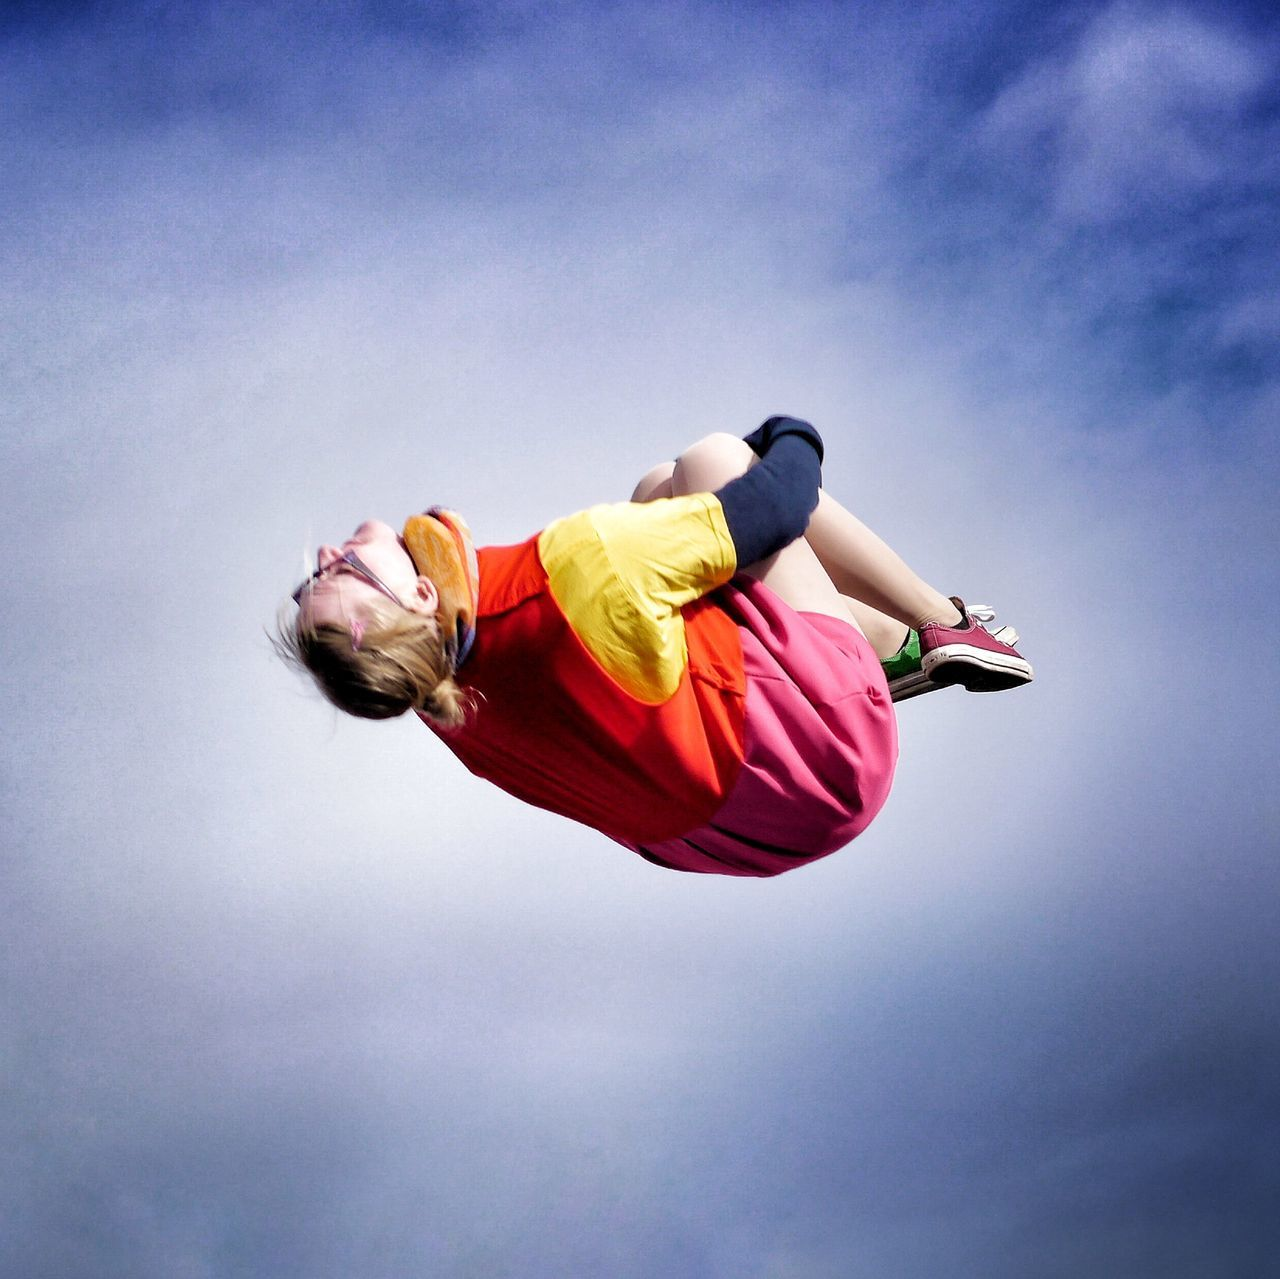 mid-air, low angle view, sky, one person, full length, flying, outdoors, motion, blue, day, jumping, childhood, energetic, young adult, people